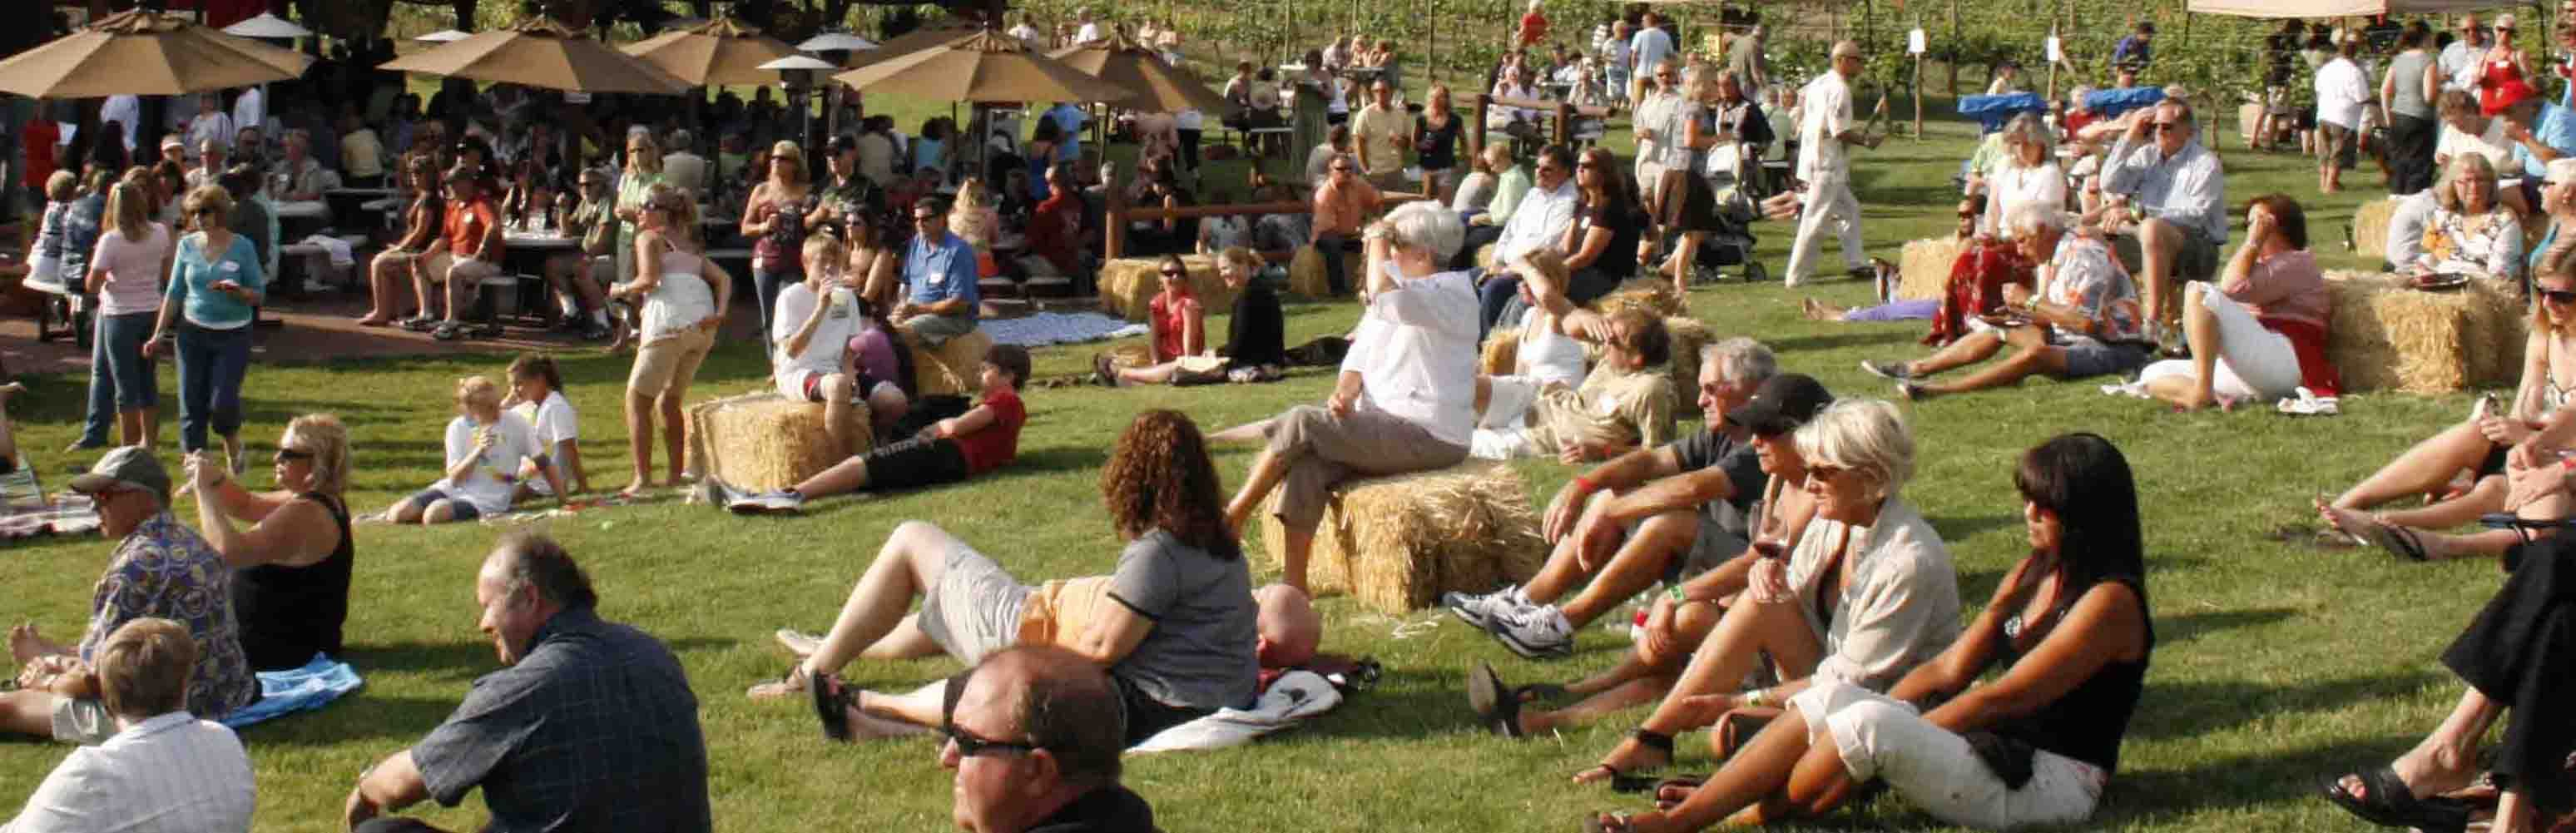 Events Special events, Event, Chelan